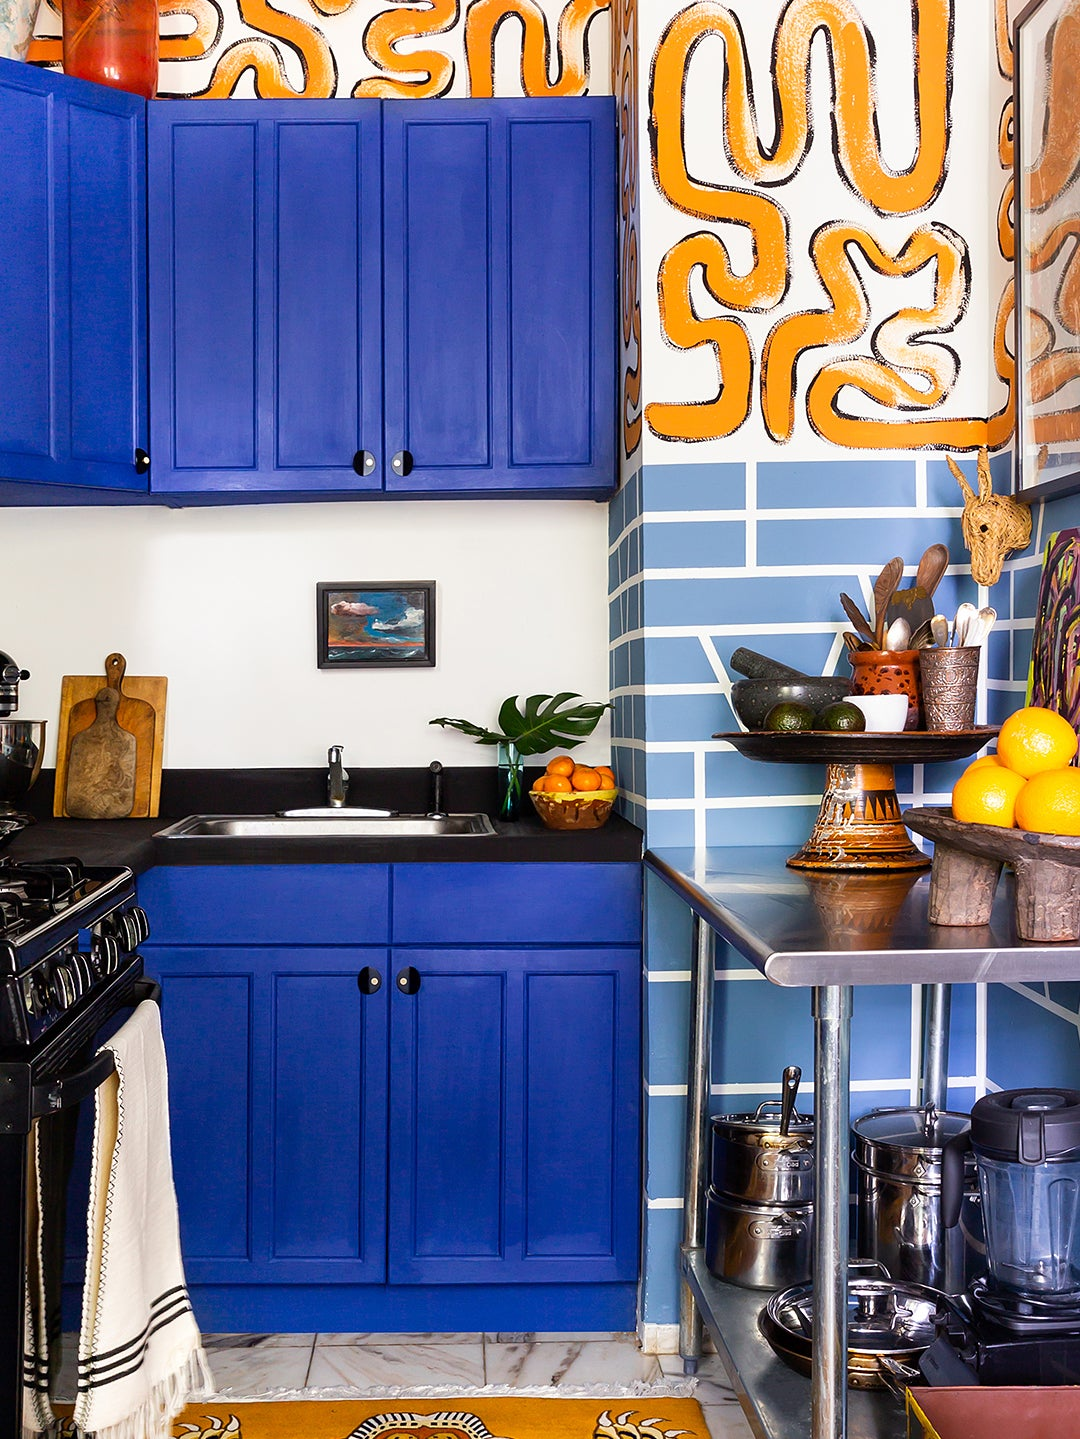 Spray Painting Your Kitchen Cabinets Isn't As Hard As It ...